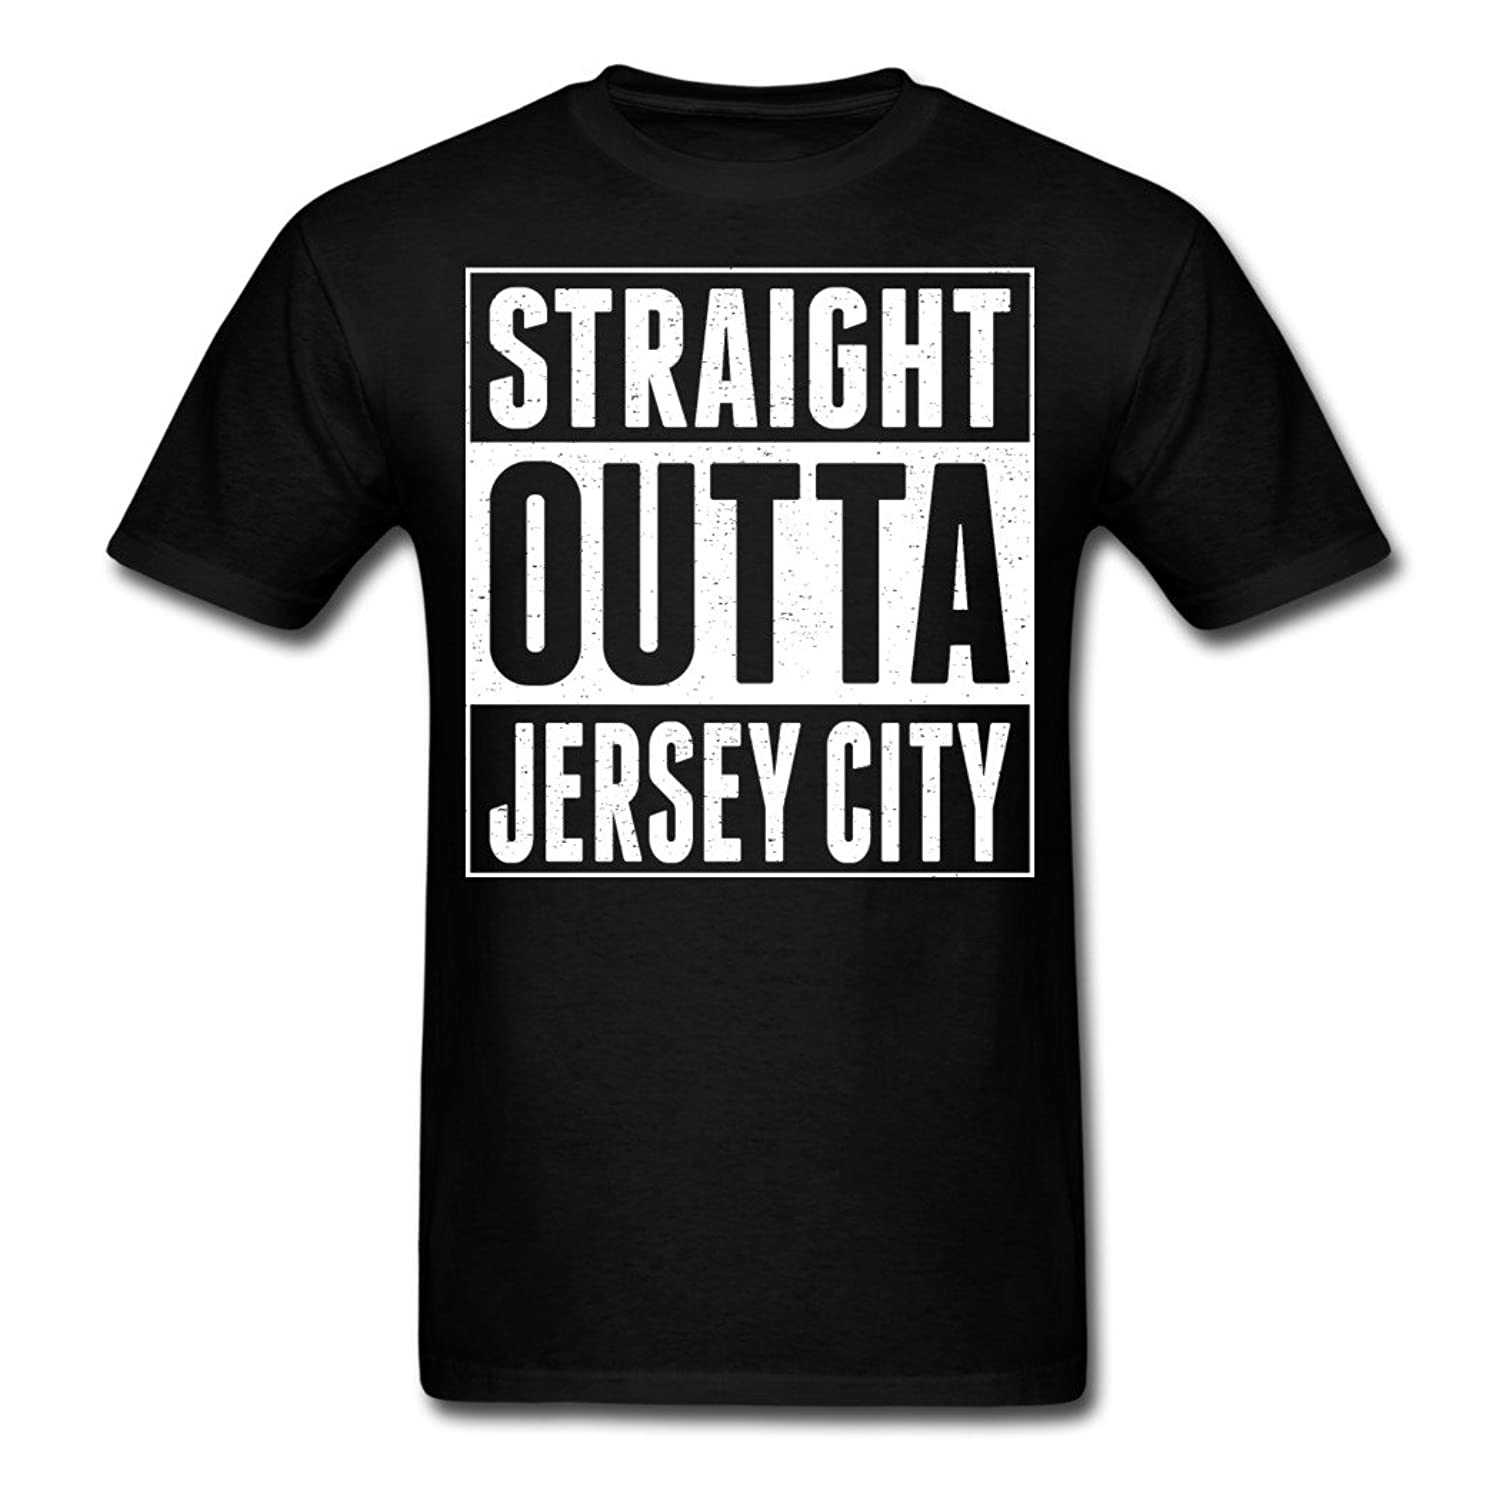 Top Sky 1 On Discount Straight Outta Jersey City Black Men's T-Shirt